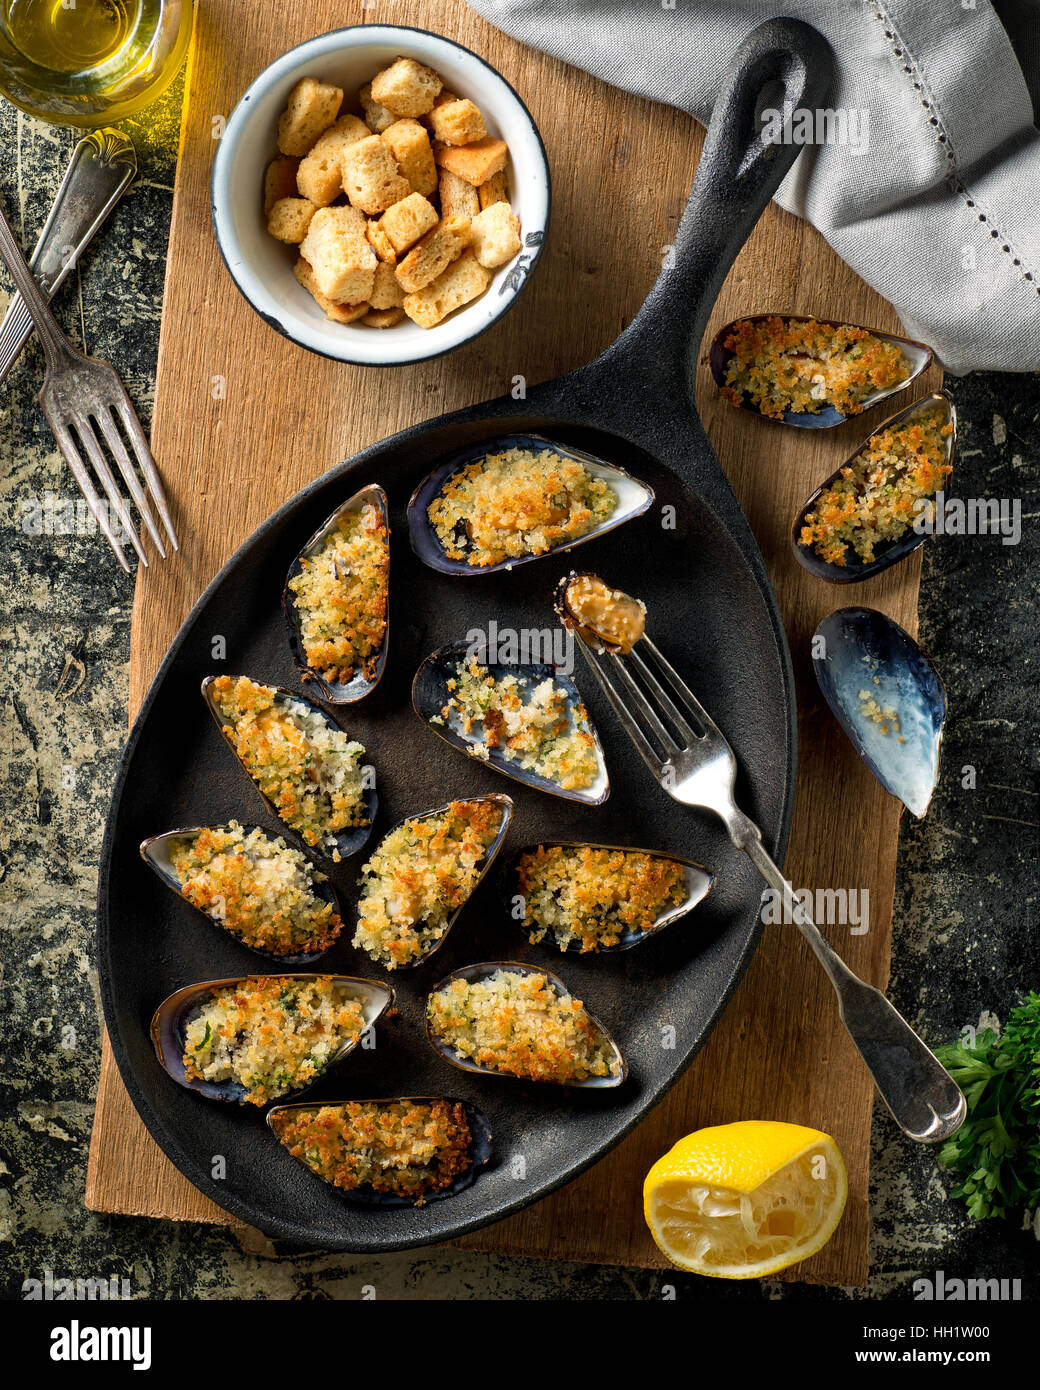 Delicious baked mussels on an iron skillet with breadcrumbs, lemon, parsley, garlic, and olive oil. - Stock Image